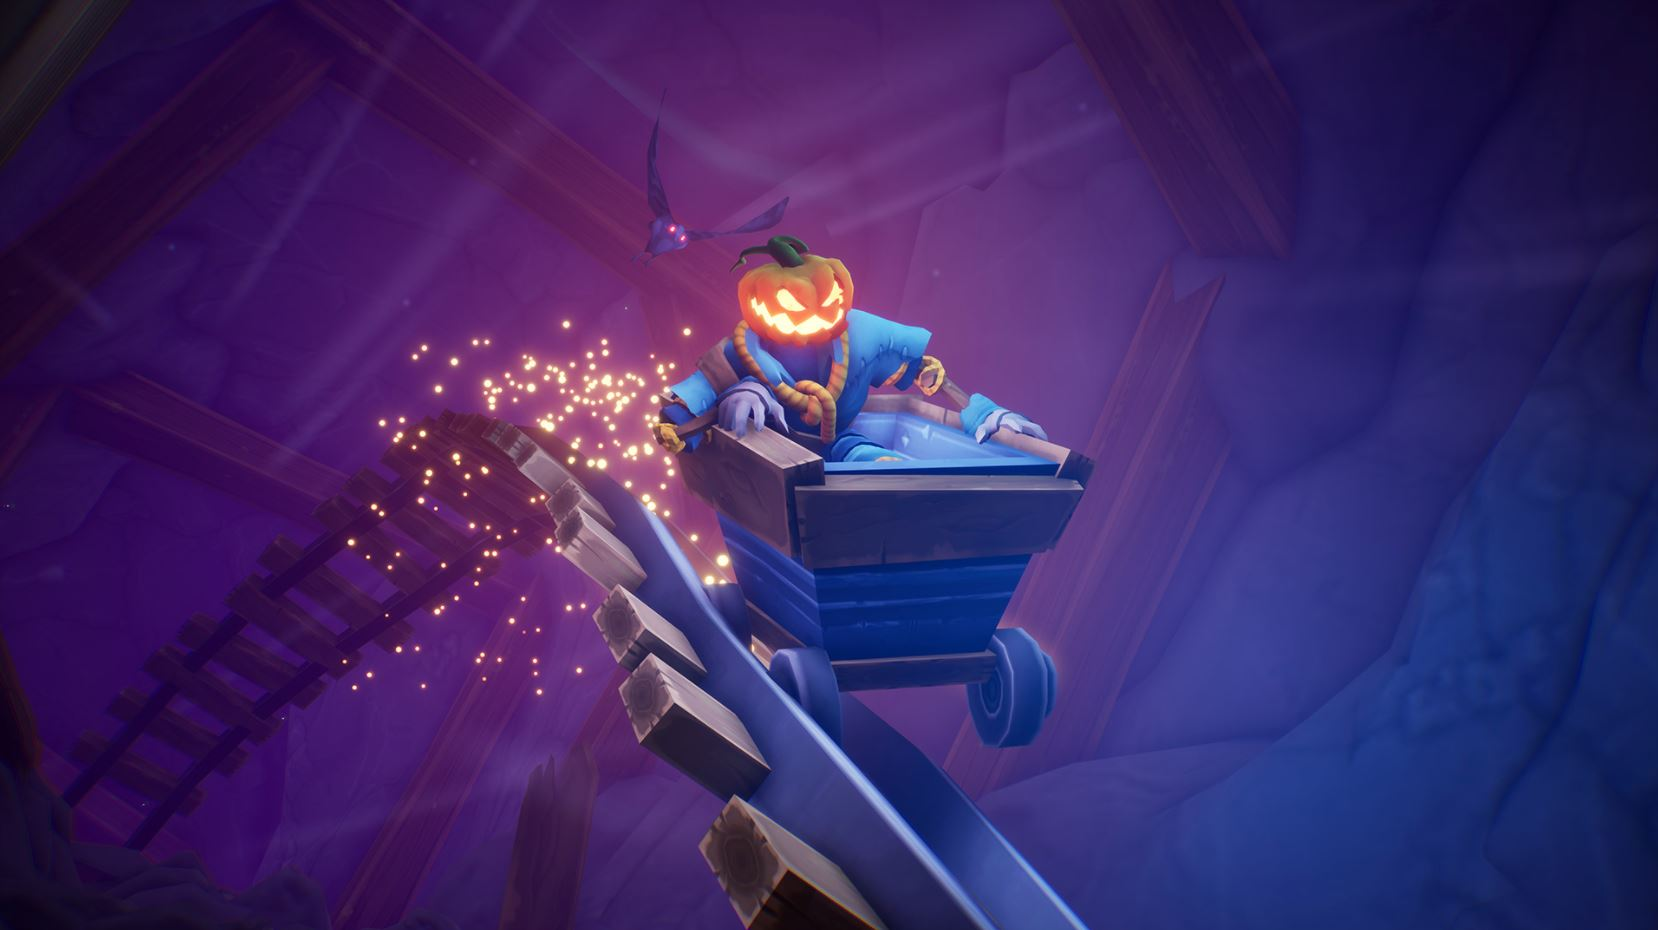 pumpkin-jack-medievil-inspired-platforming-and-combat-finally-comes-to-ps4-later-this-month